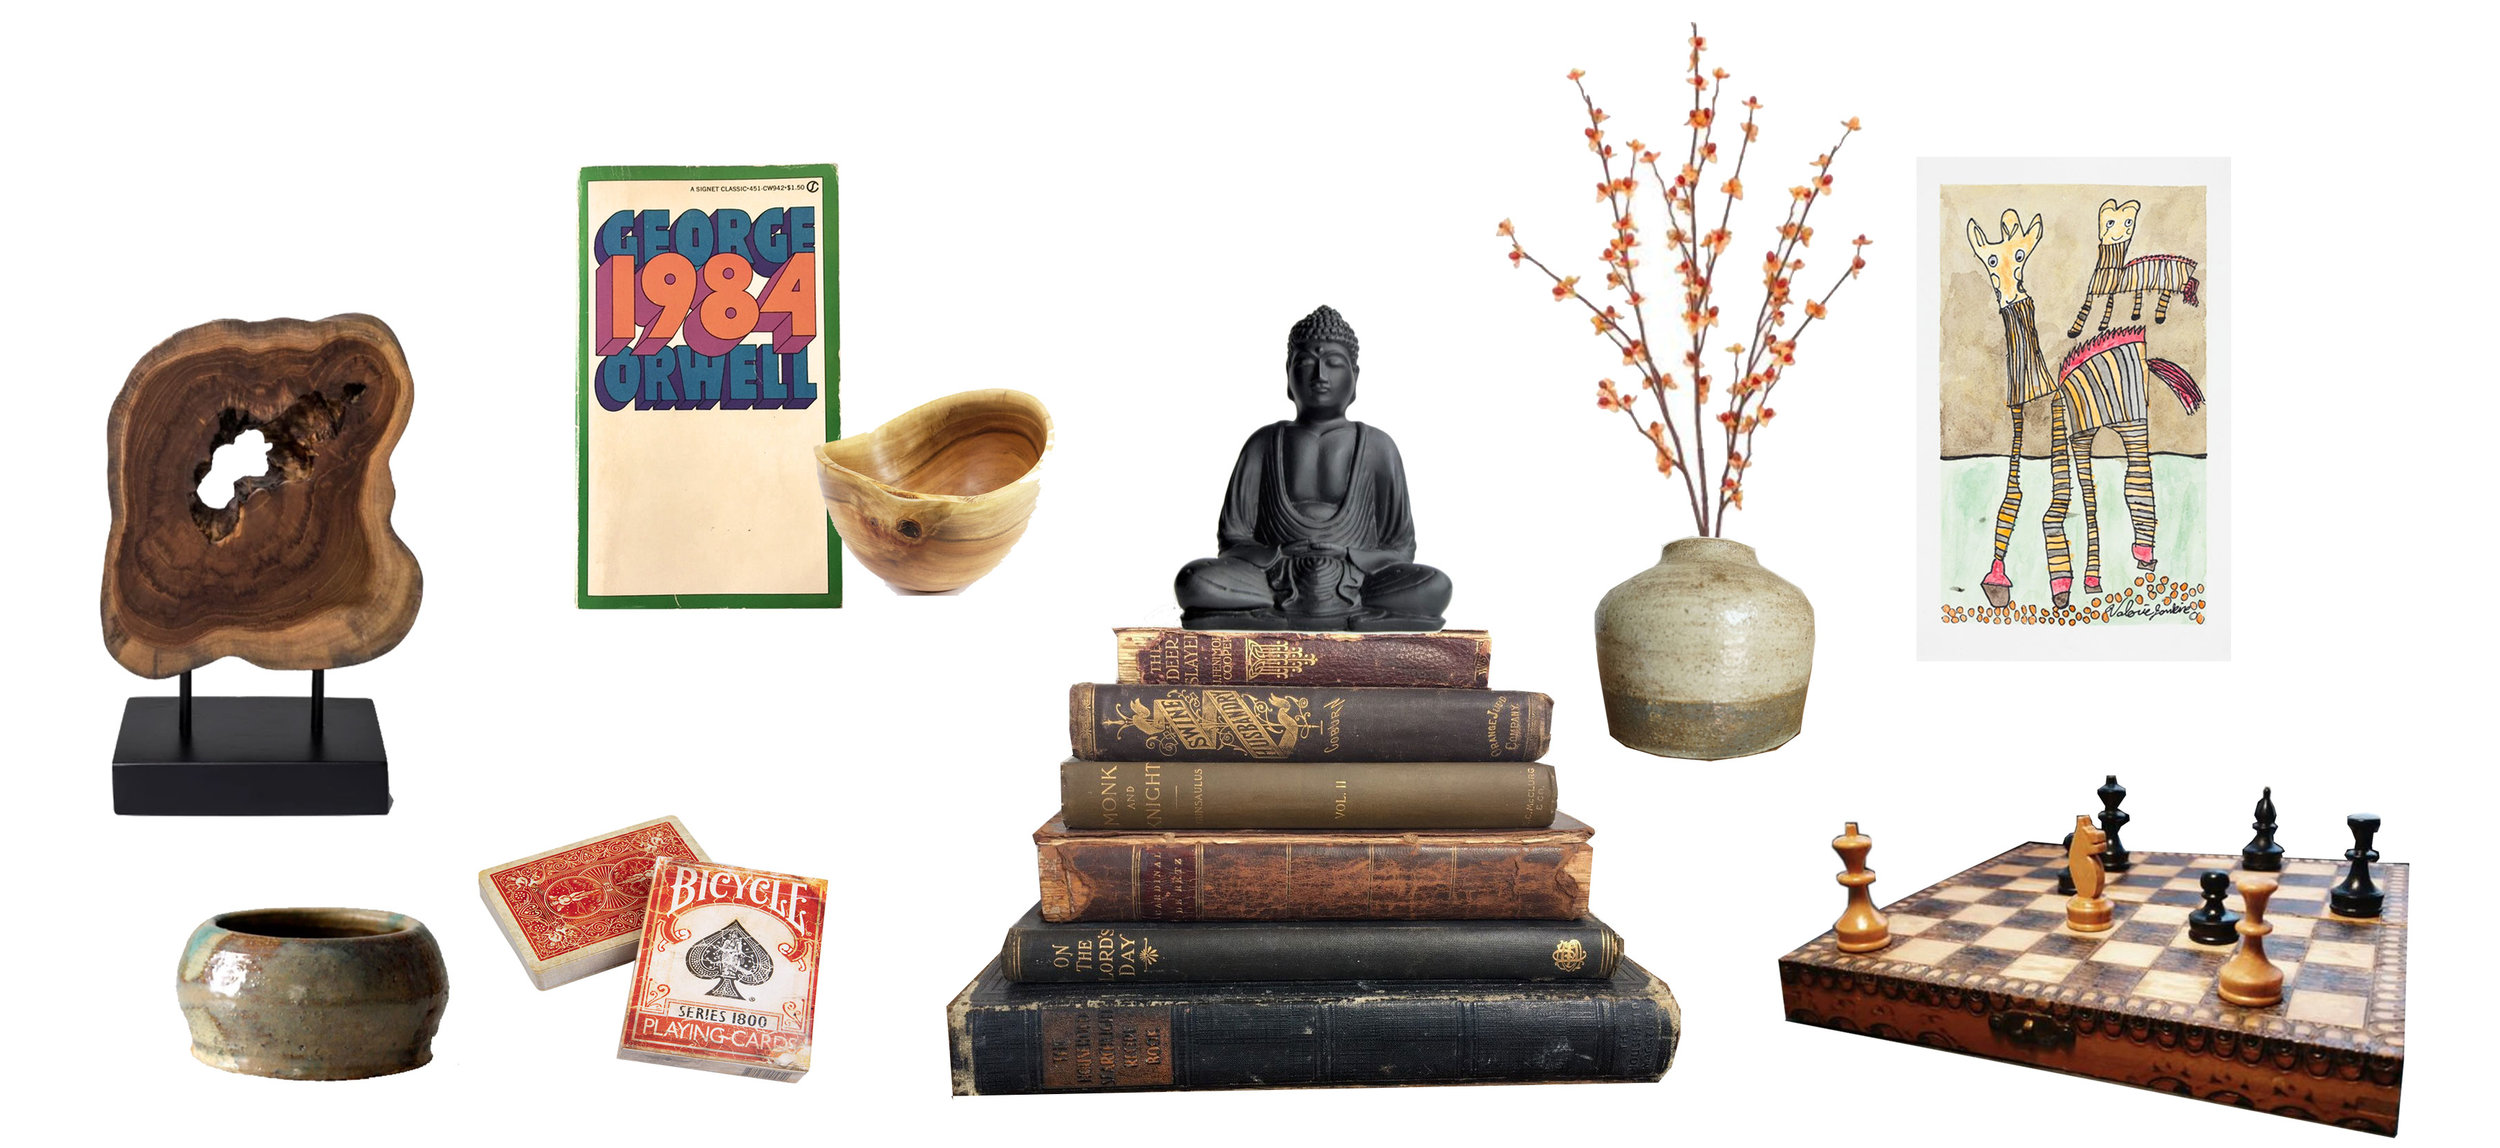 Wooden Sculpture: Target | Small Ceramic Bowl:  Etsy  | Vintage Playing Cards:  Amazon  | Vintage Copy 1984:  depot.com  | Acacia Bowl:  Etsy  | Buddha Statue:  Bungalow Room  | Old Books:  Etsy  | Small Vase:  Etsy  | Print:  Creativity Explored  | Antique Chess Set:  Love Antiques